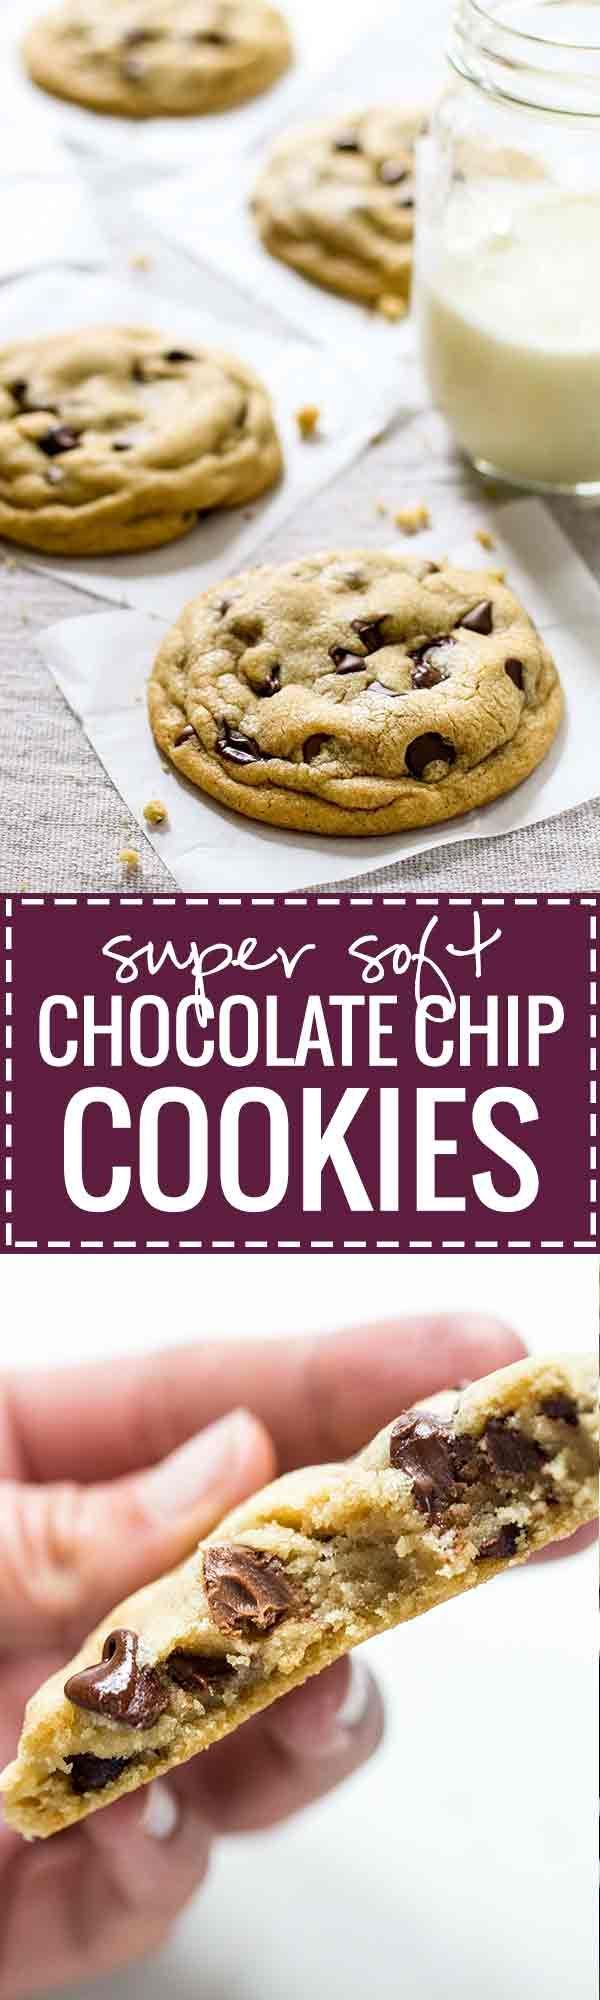 Overnight cookie recipes